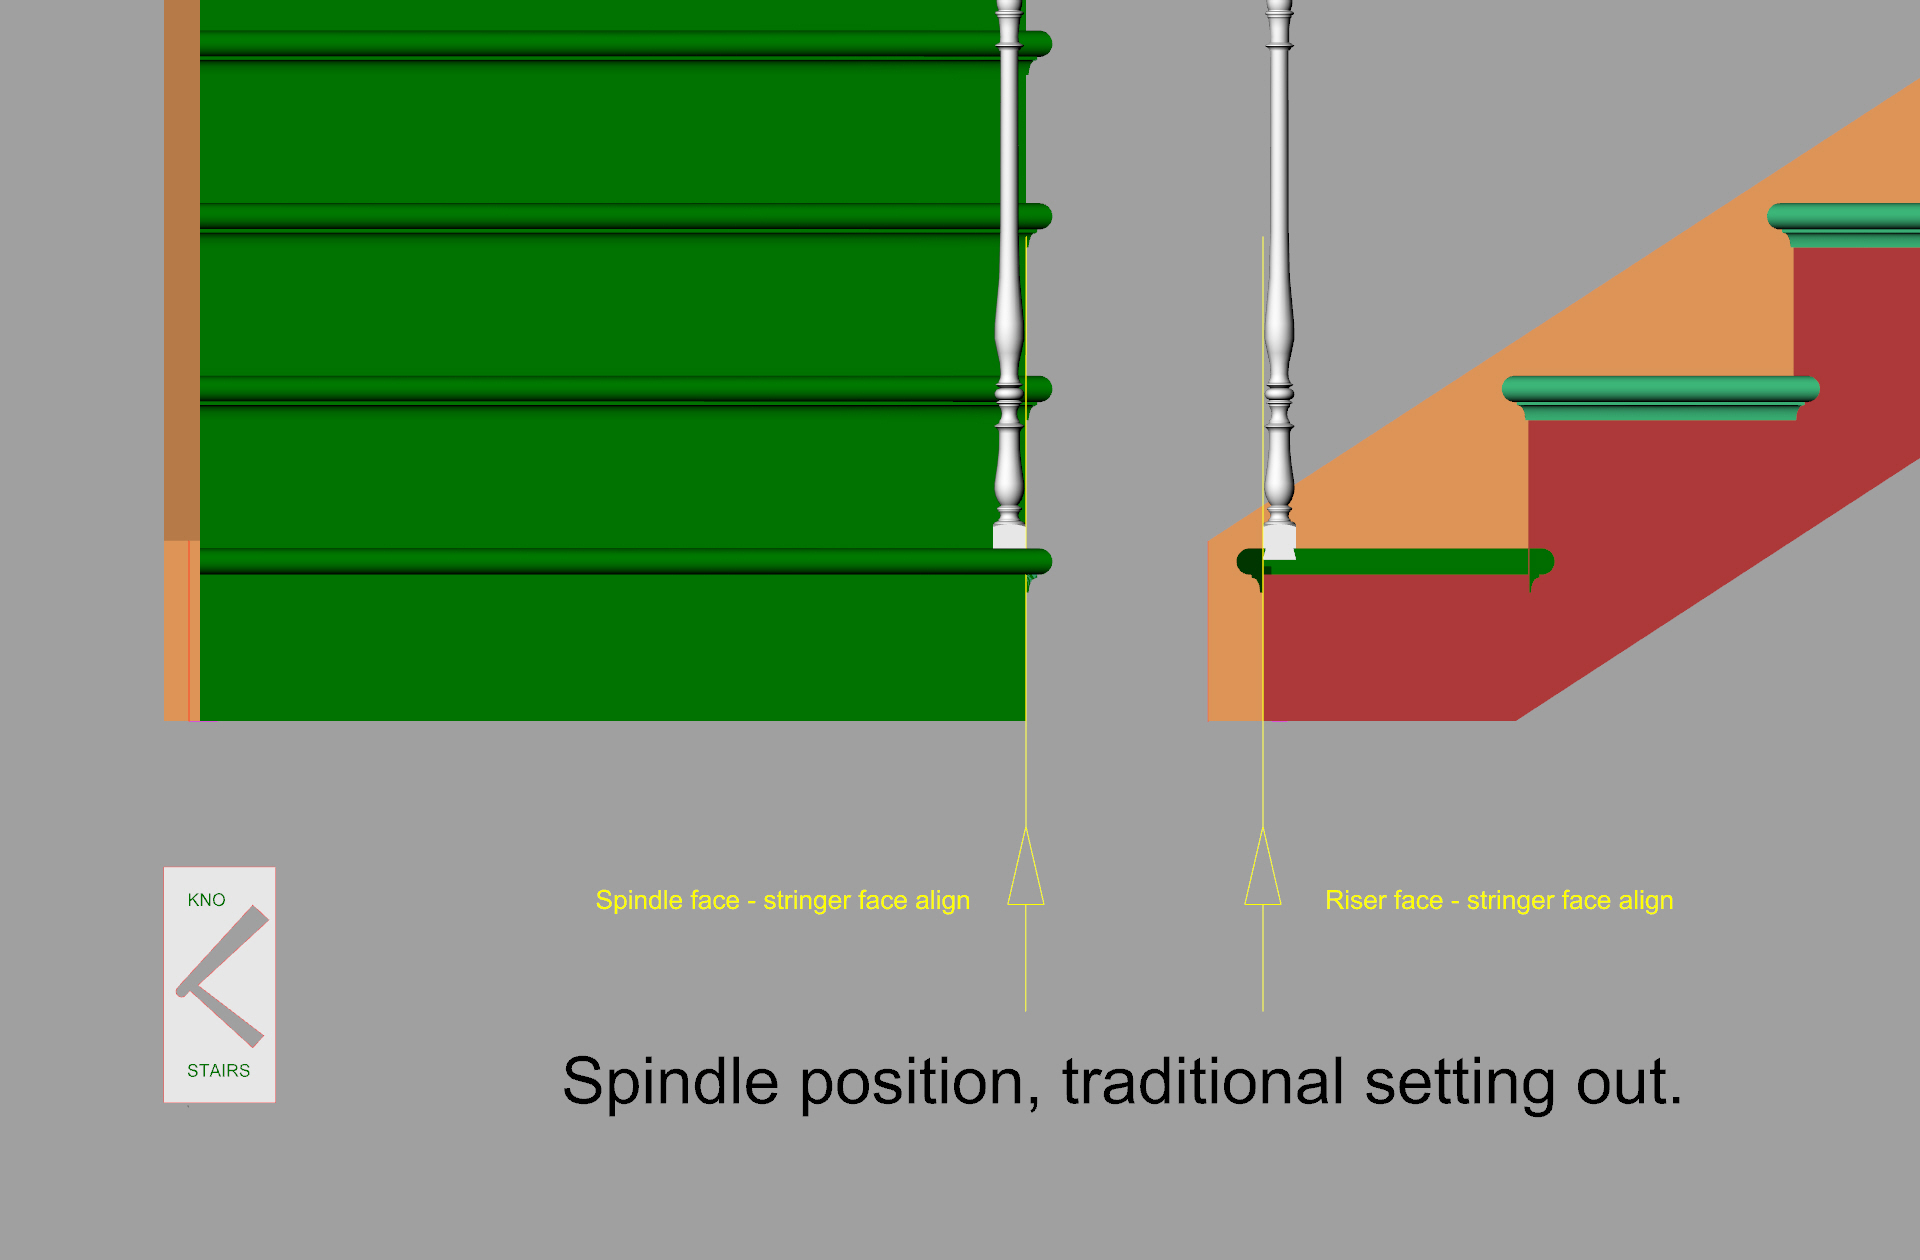 Primary spindle position, cut string stairs.